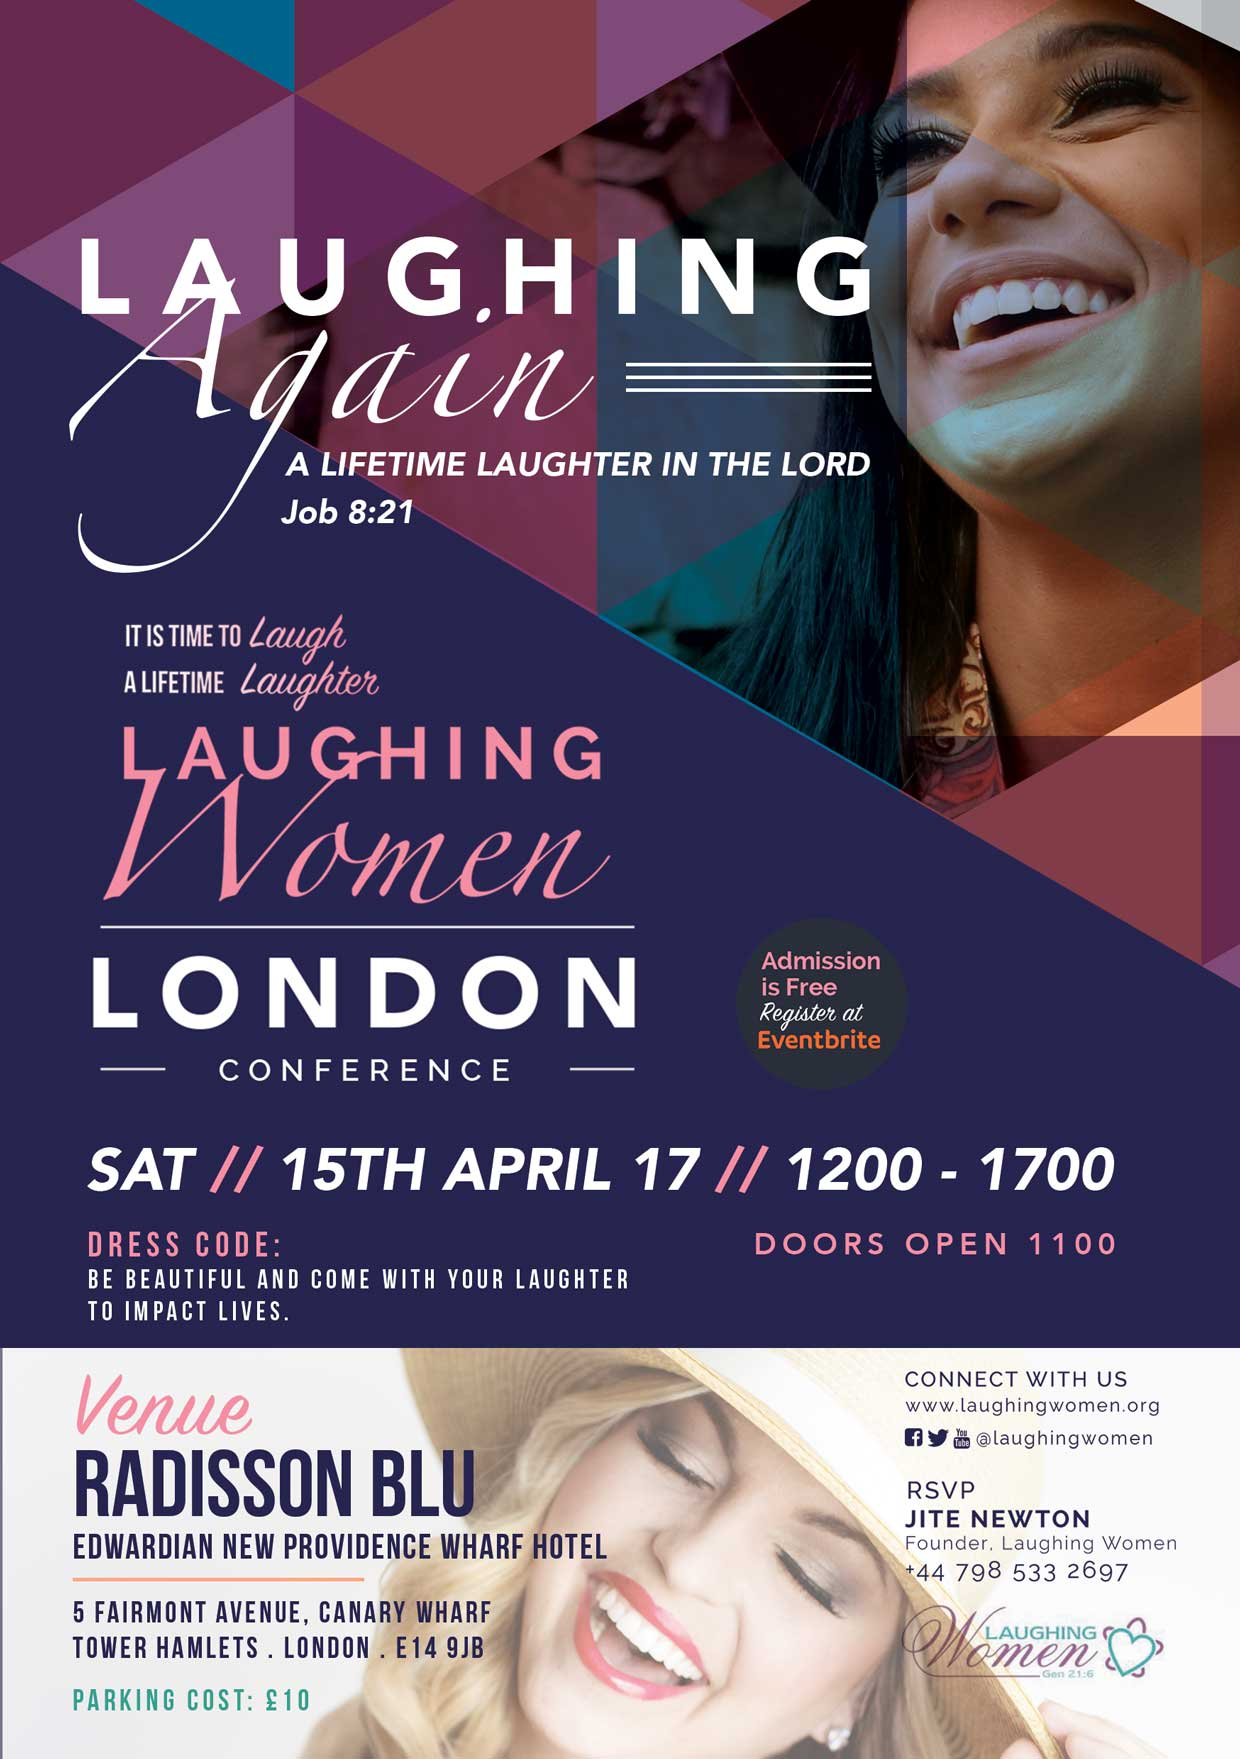 LW-London-Flyer